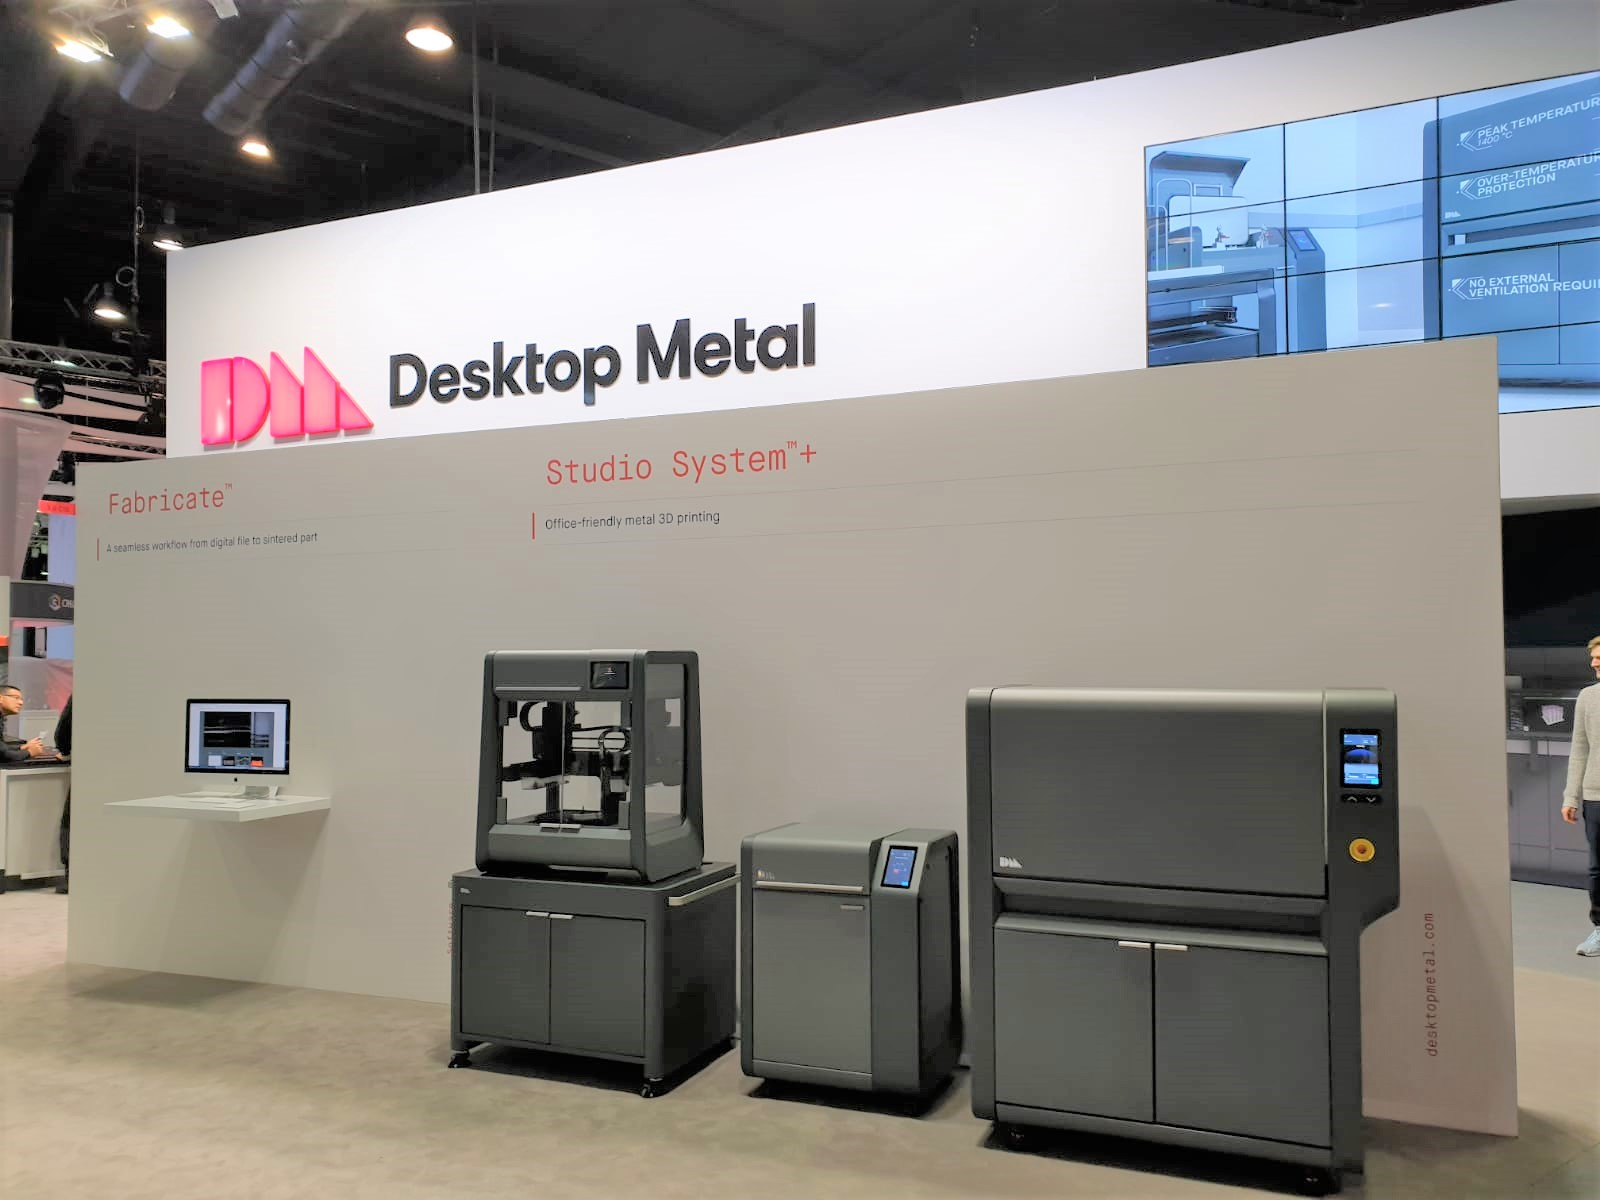 Desktop Metal Studio System+